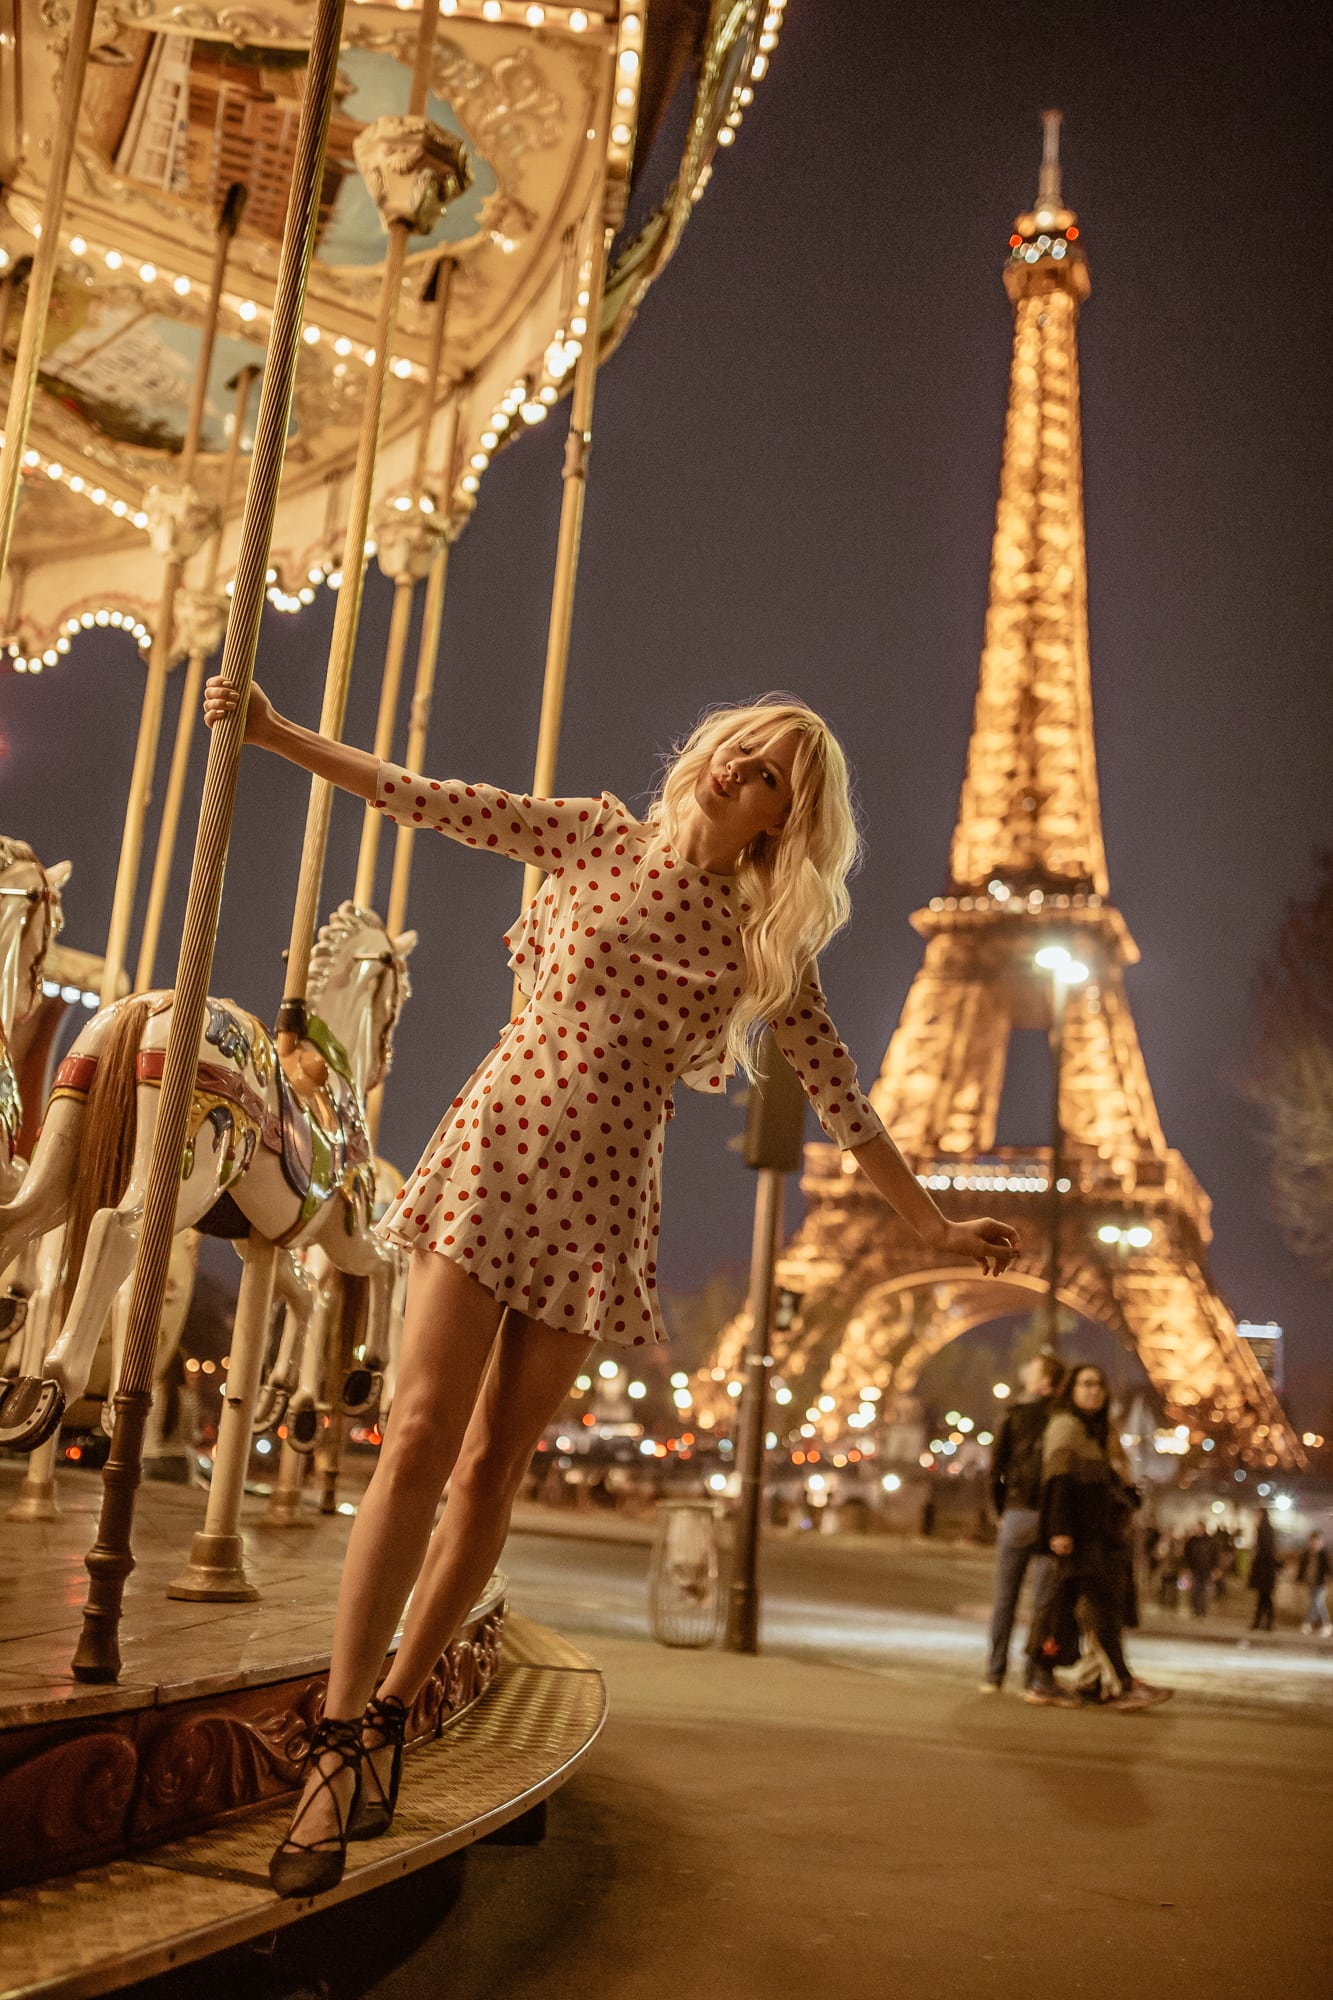 jetsetlust at the carousel by Eiffel Tower